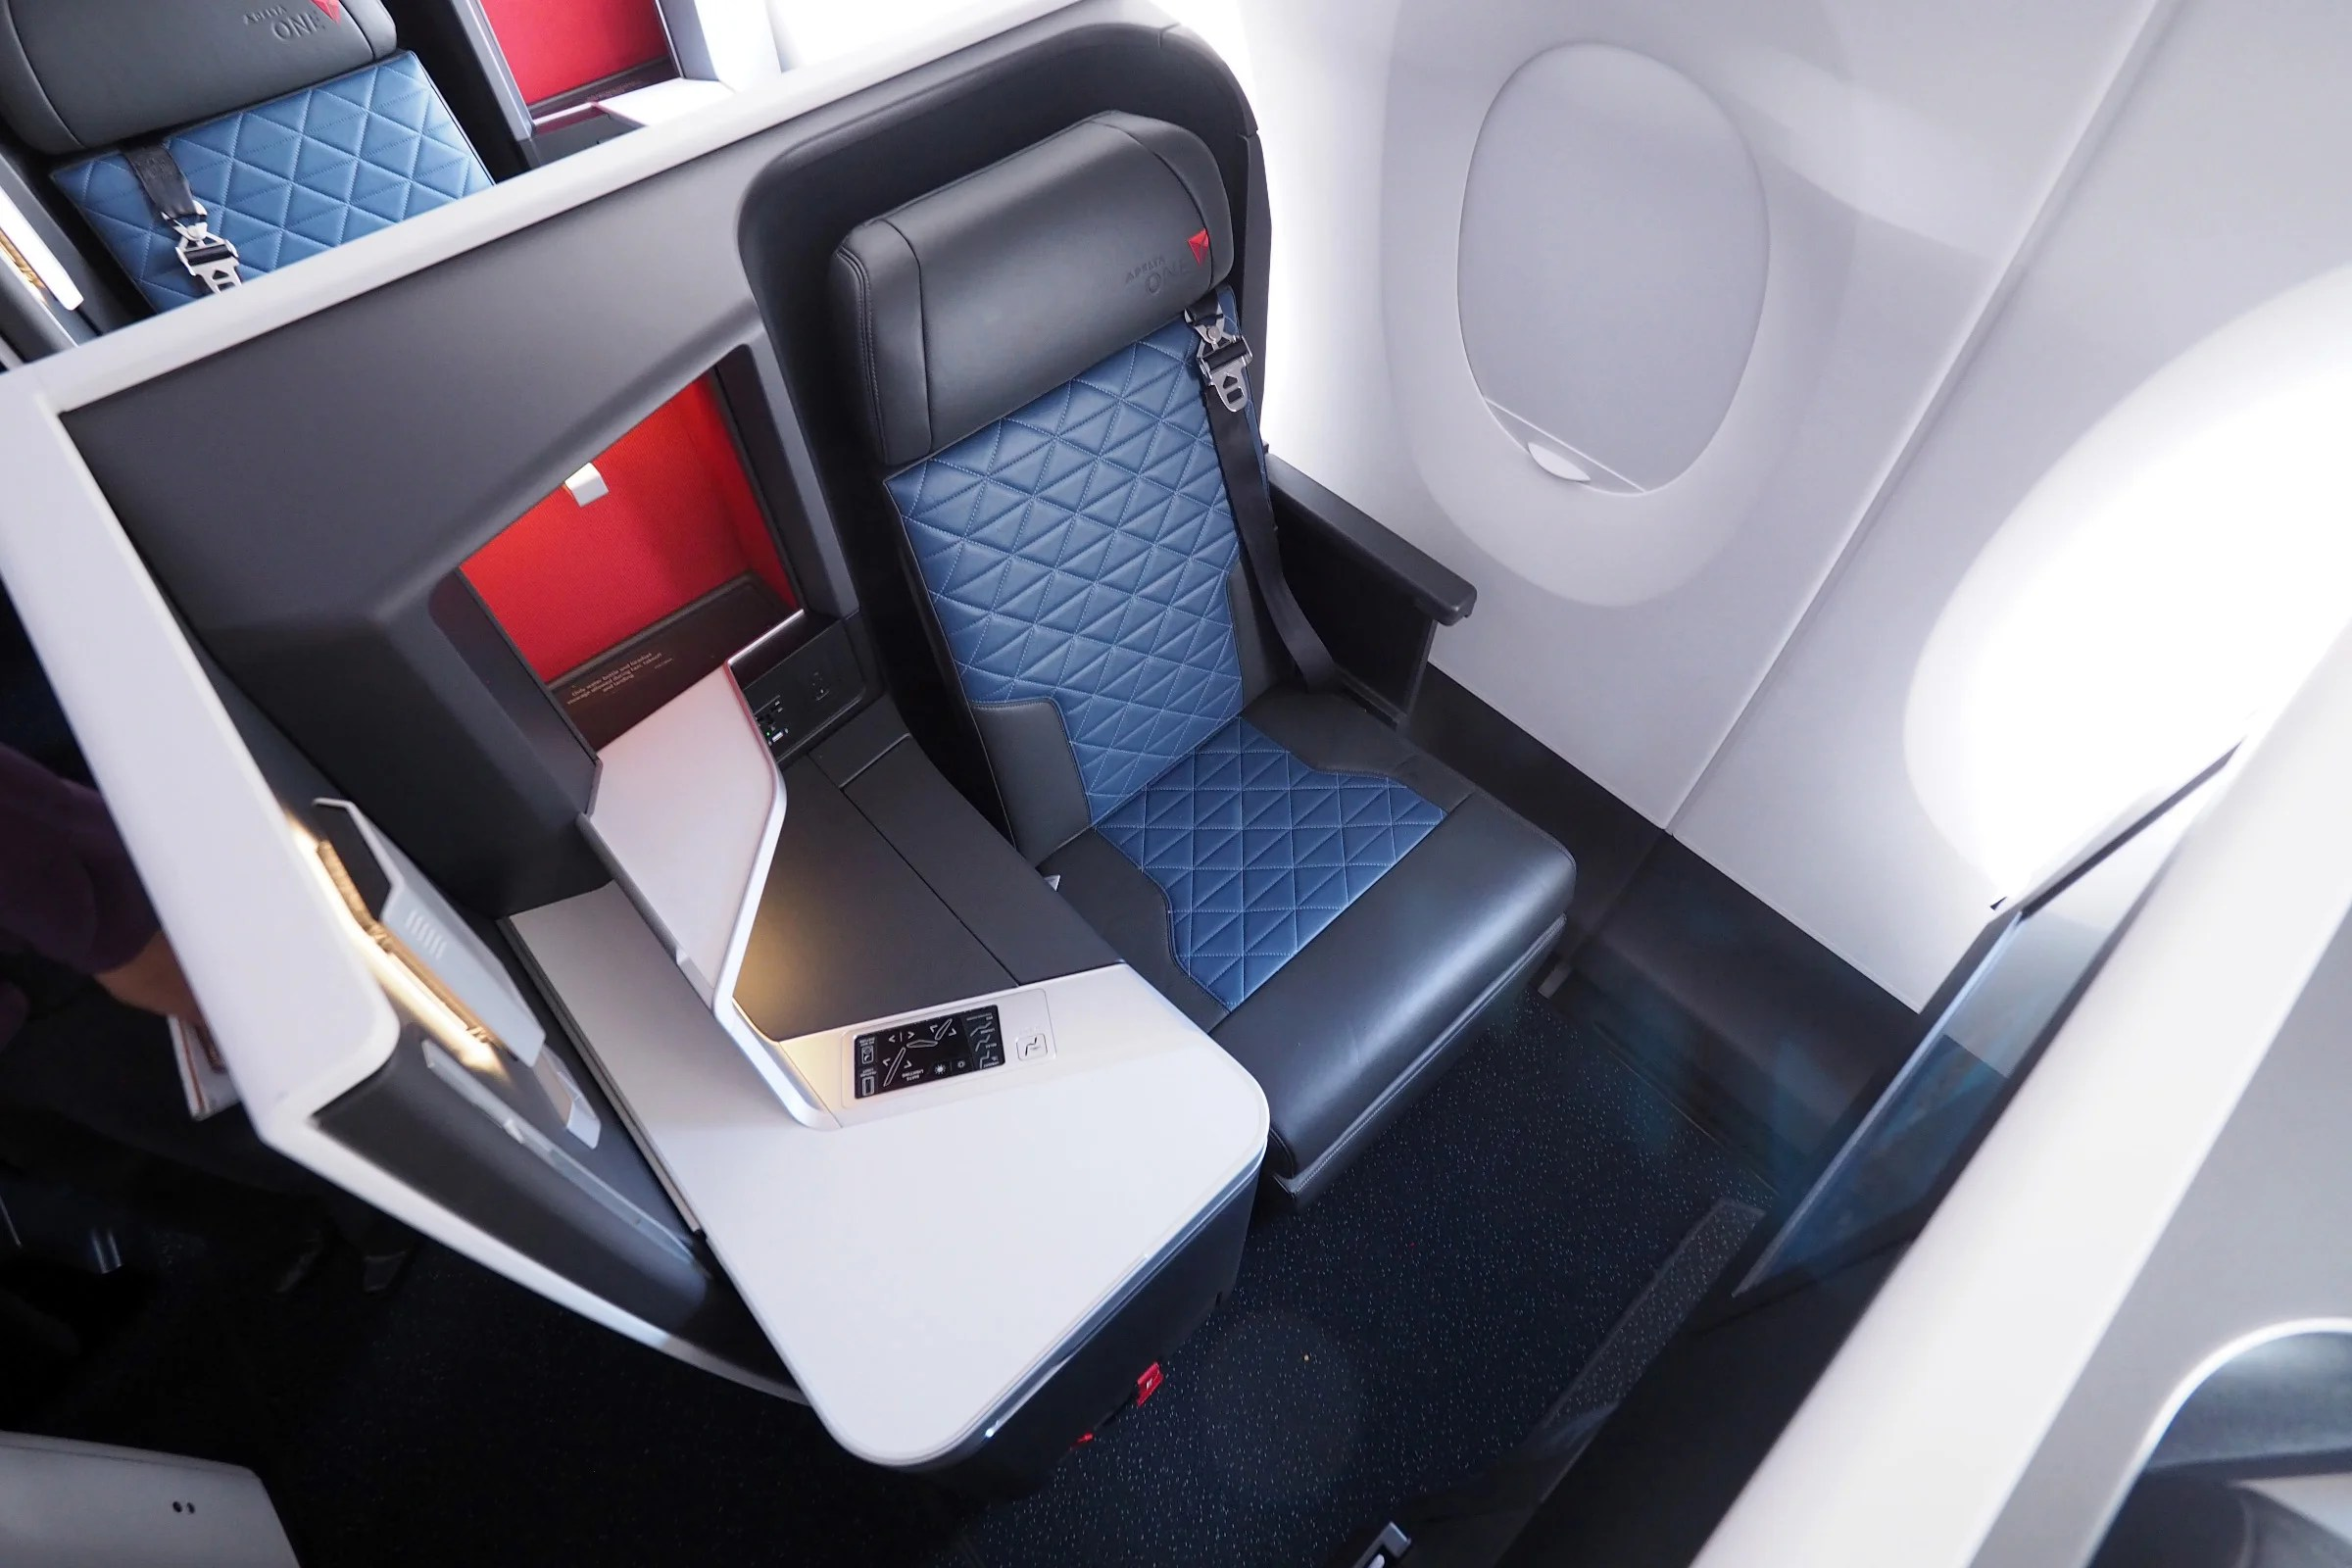 11 Pros and Cons: Delta One Suite on the Airbus A350